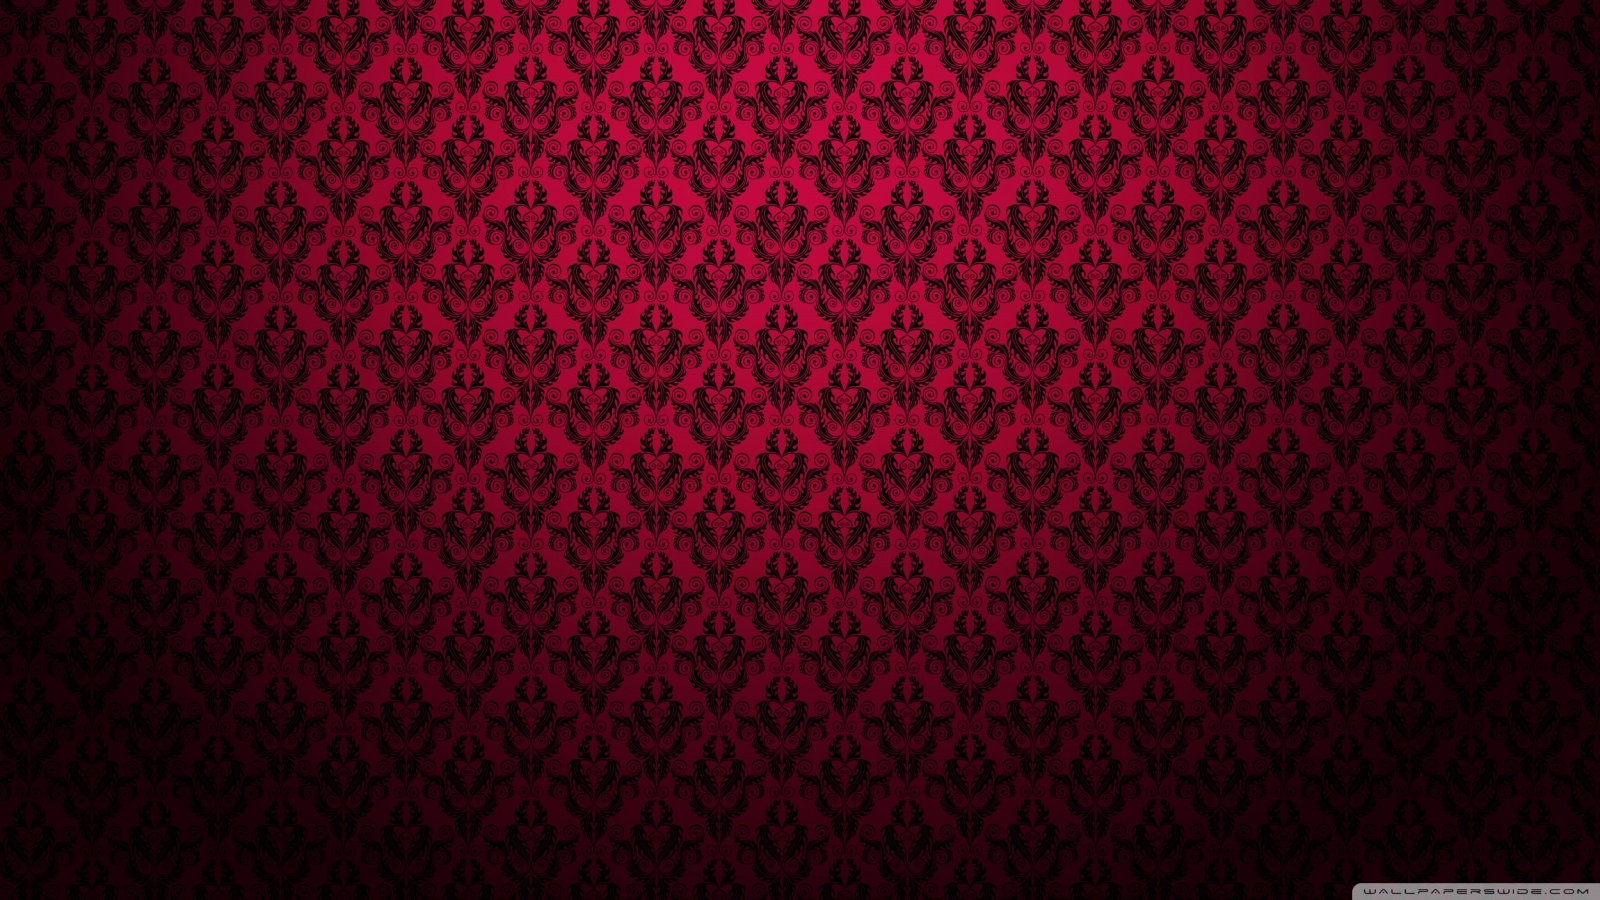 background-pattern-red-Lastest-Red-Pattern-Hd-Desktop-Widescreen-High-Definition-withi-wallpaper-wp3402817